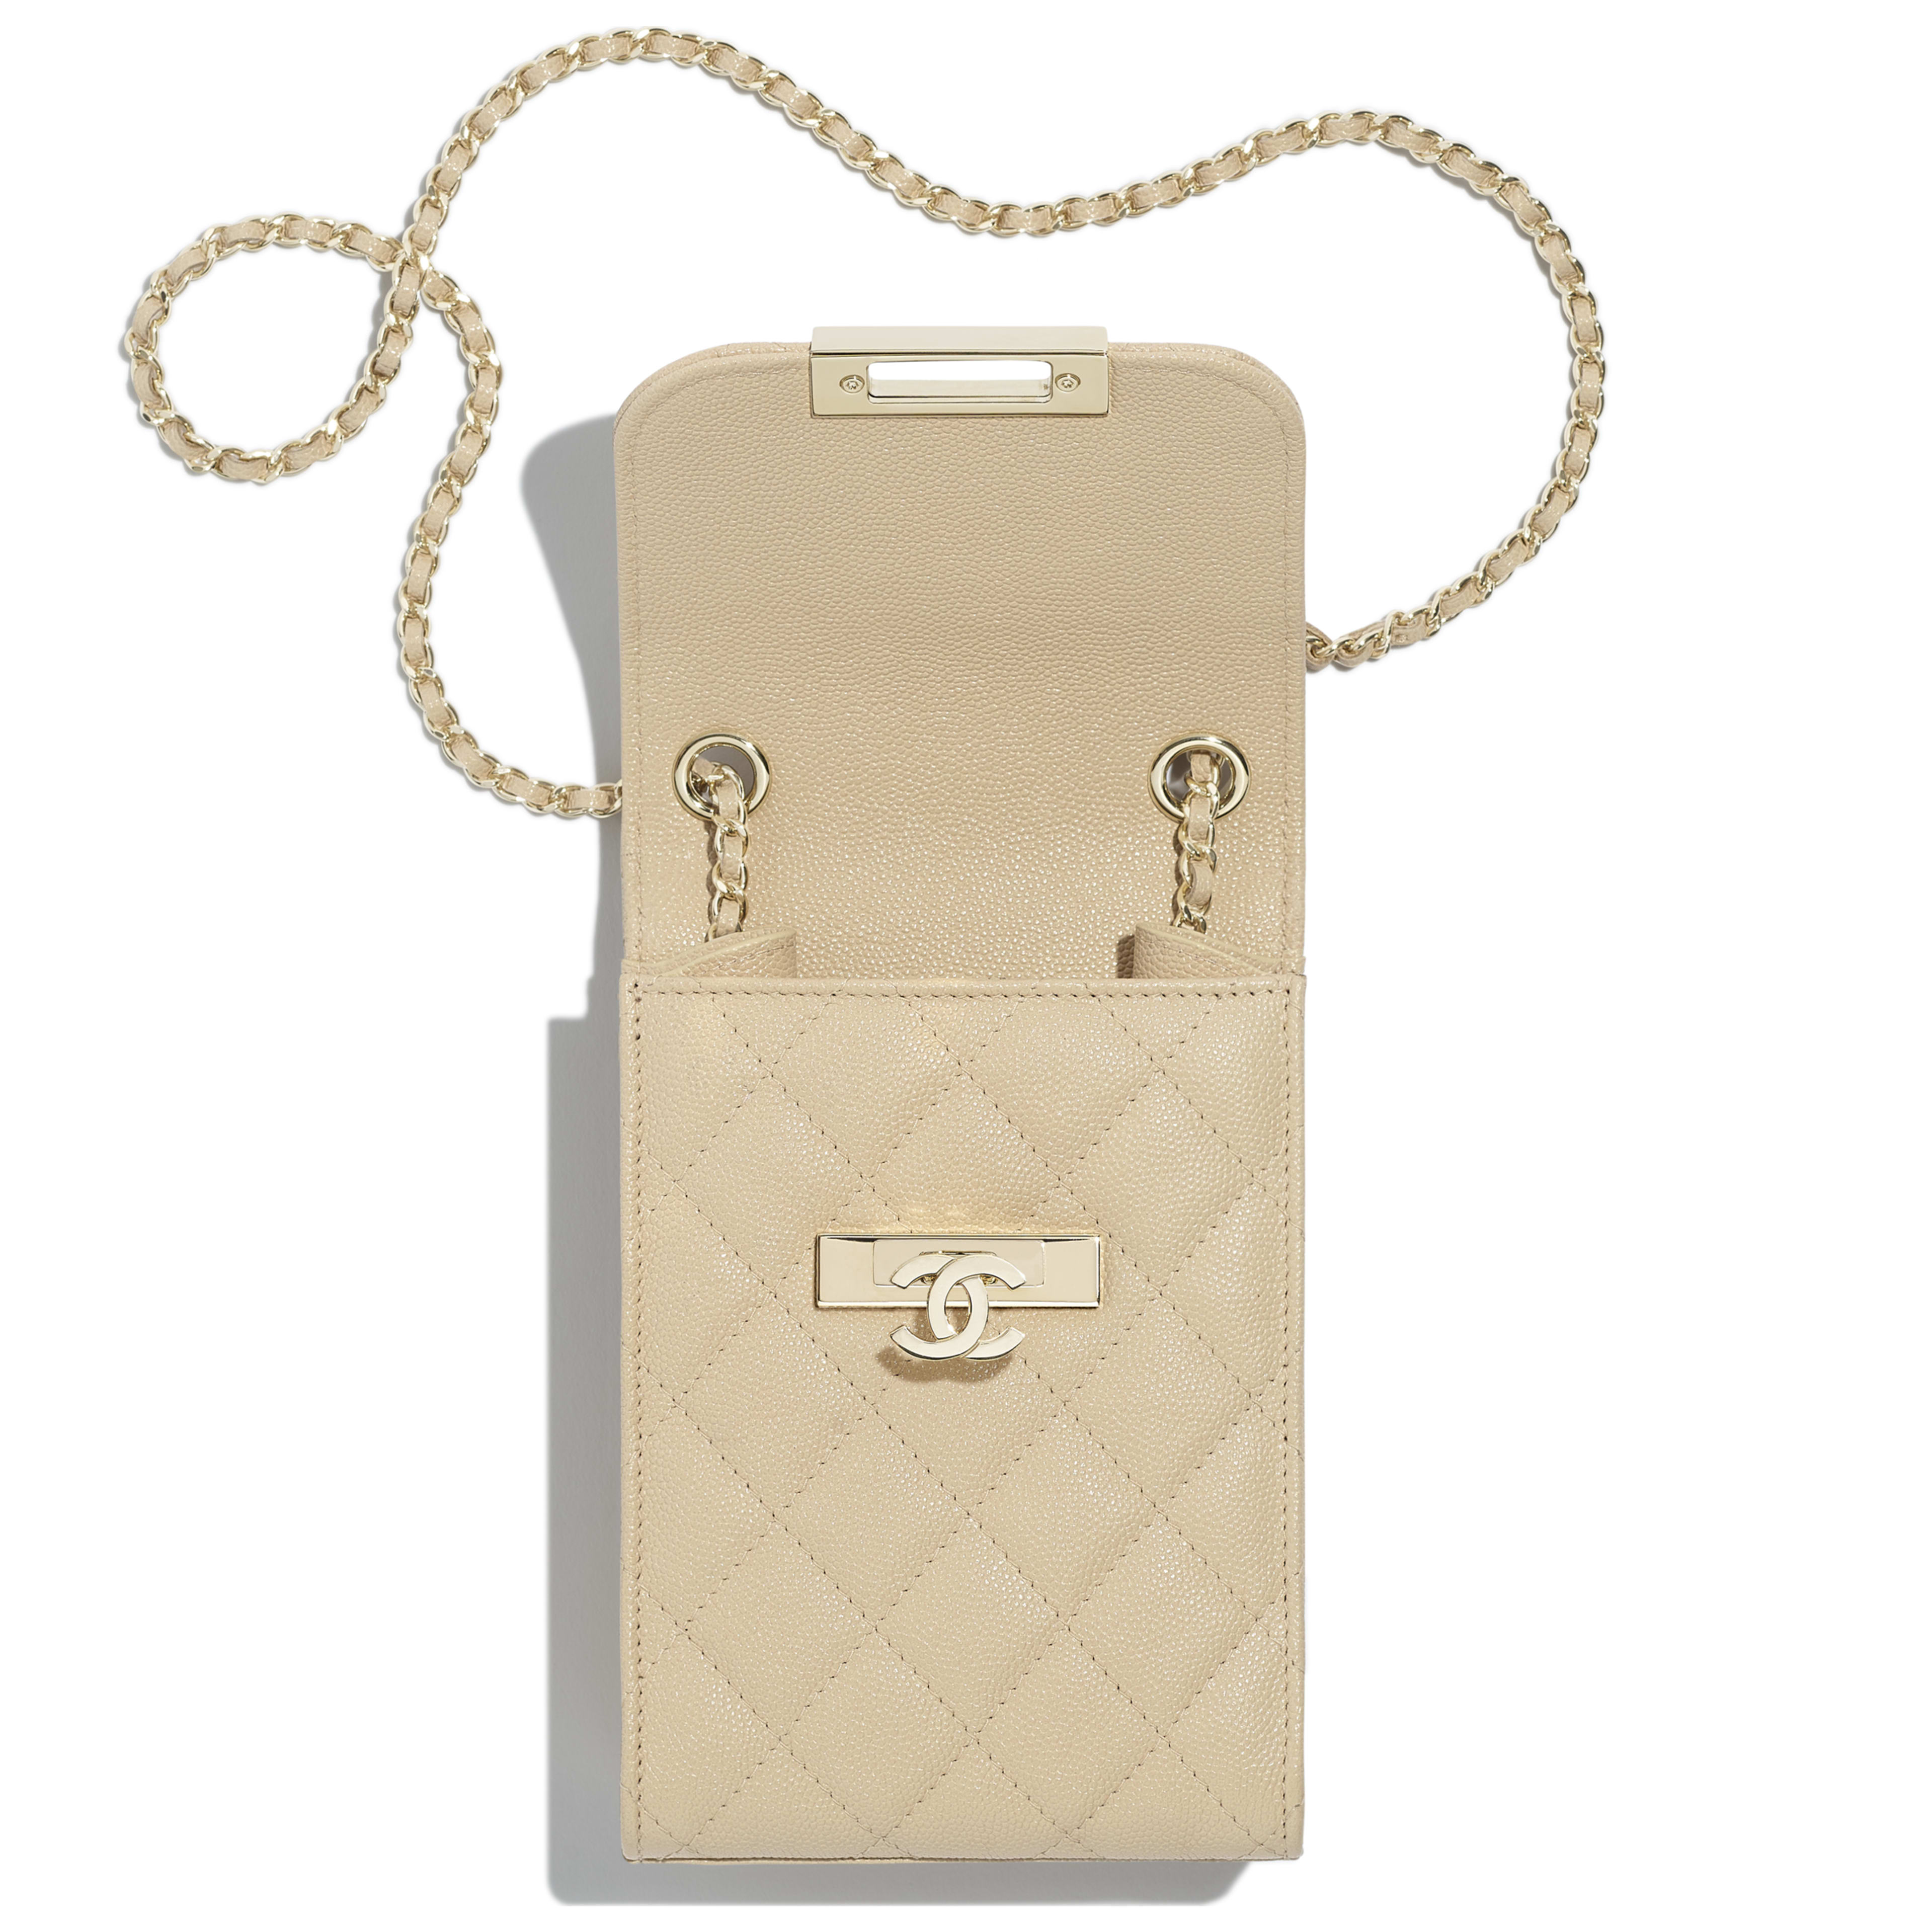 Clutch With Chain - Beige - Grained Goatskin & Gold Metal - Other view - see full sized version